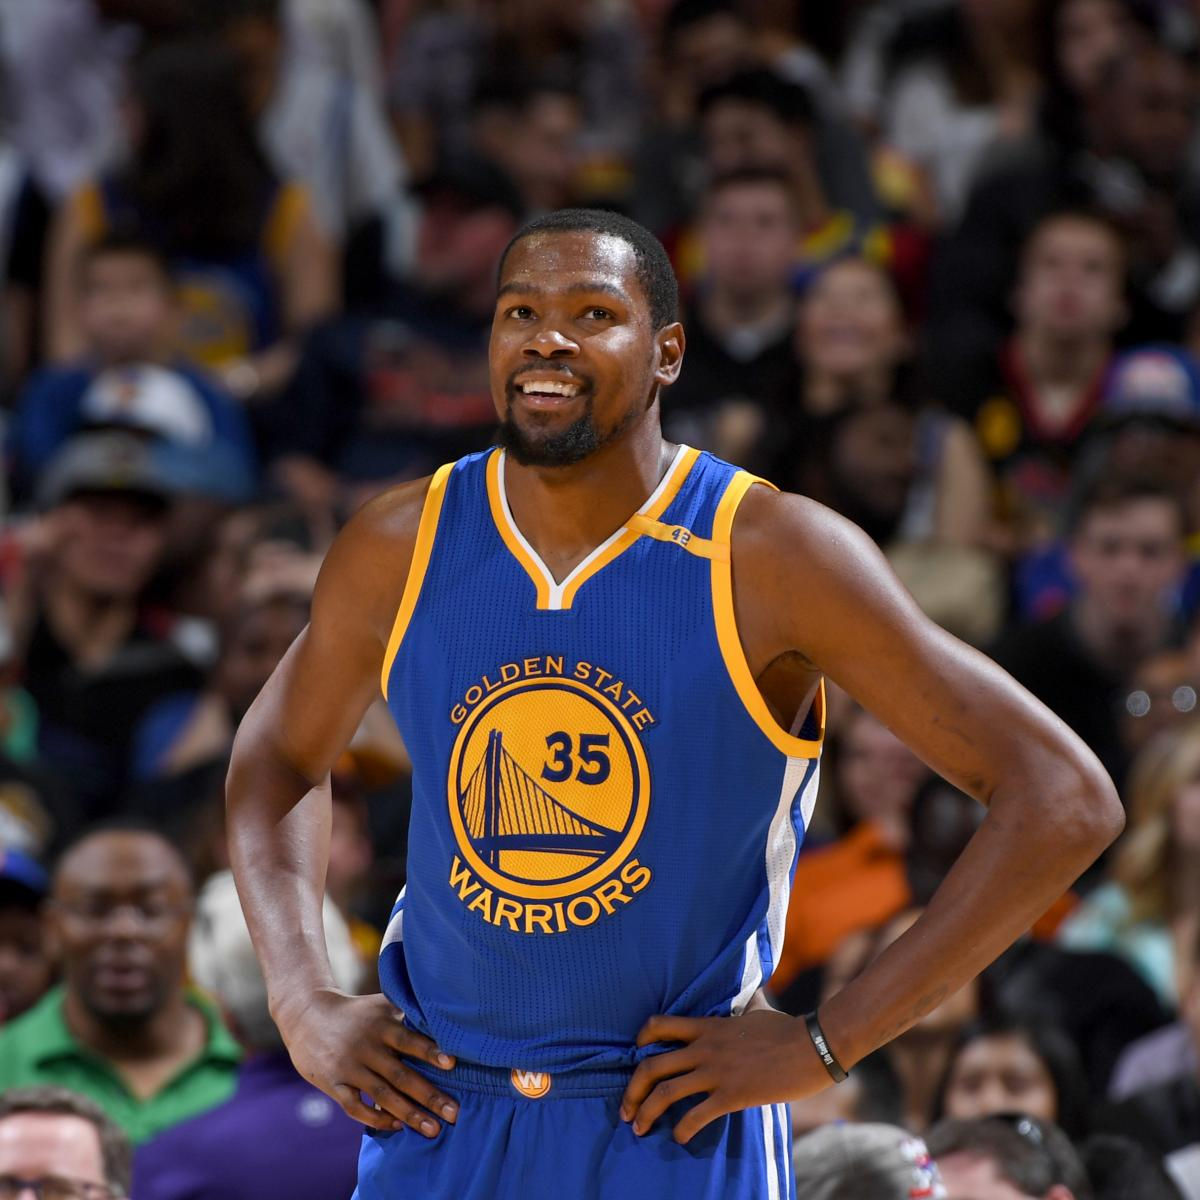 Warriors Come Out To Play Bleacher Report: Warriors Embrace Antagonist Role With 'Super Villains